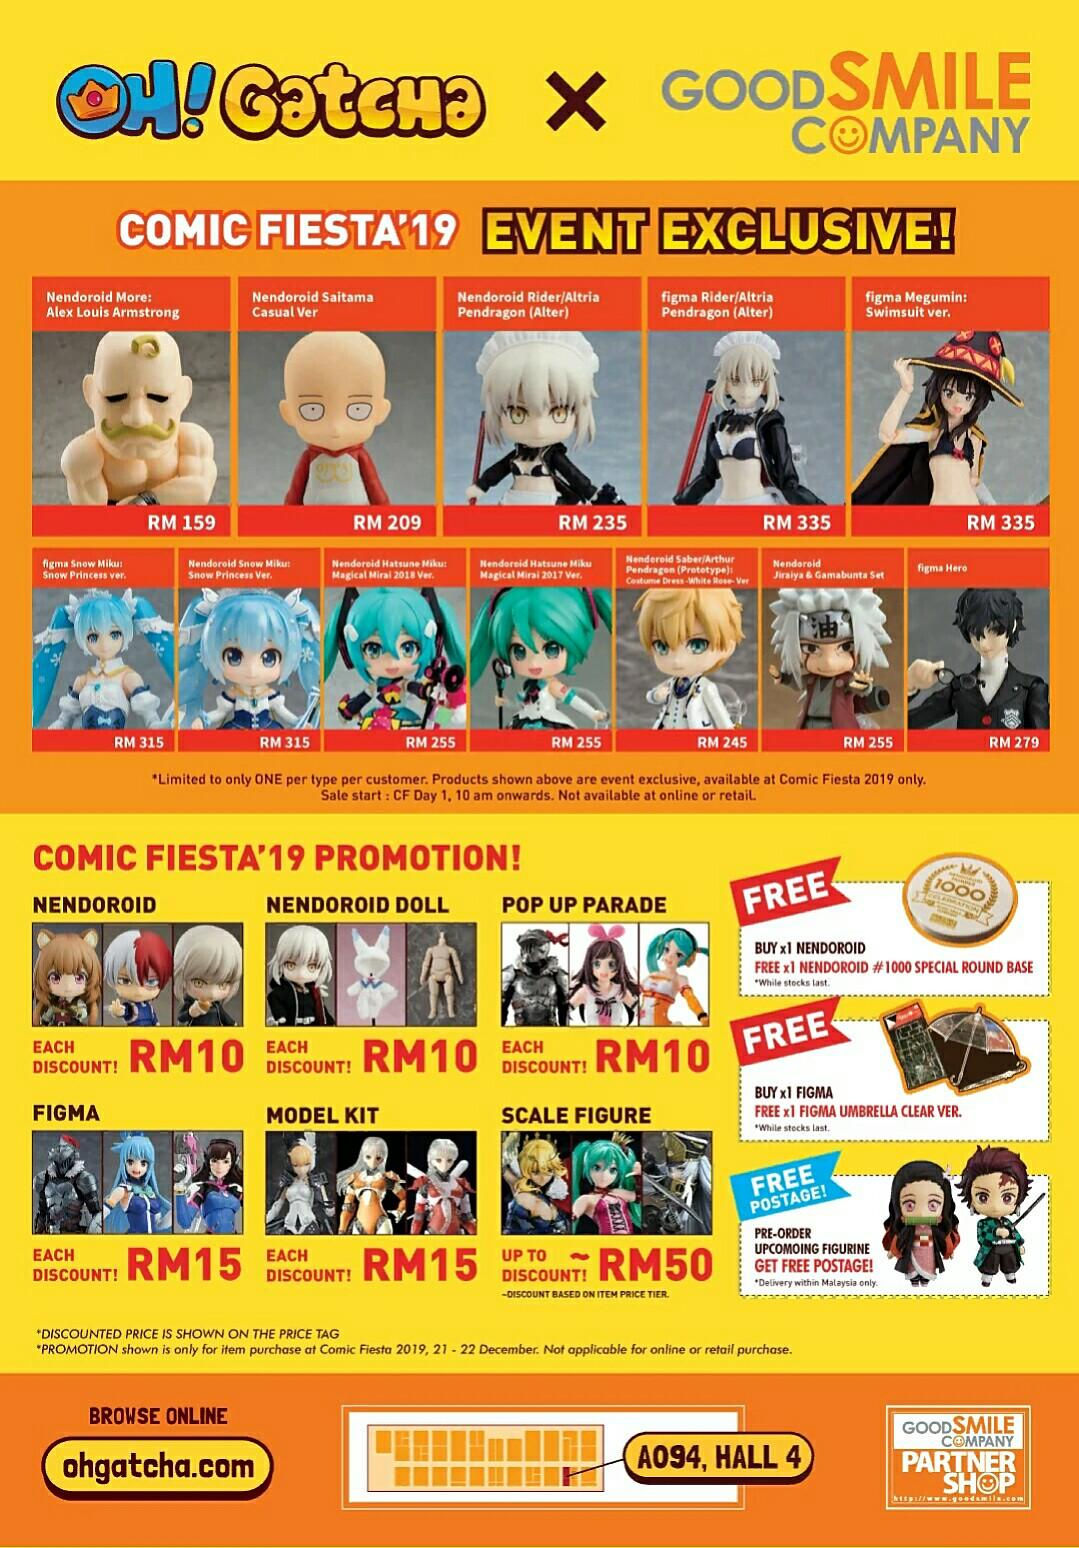 [INFO] Good Smile Company Event Exclusive Merchandise @ Comic Fiesta 2019